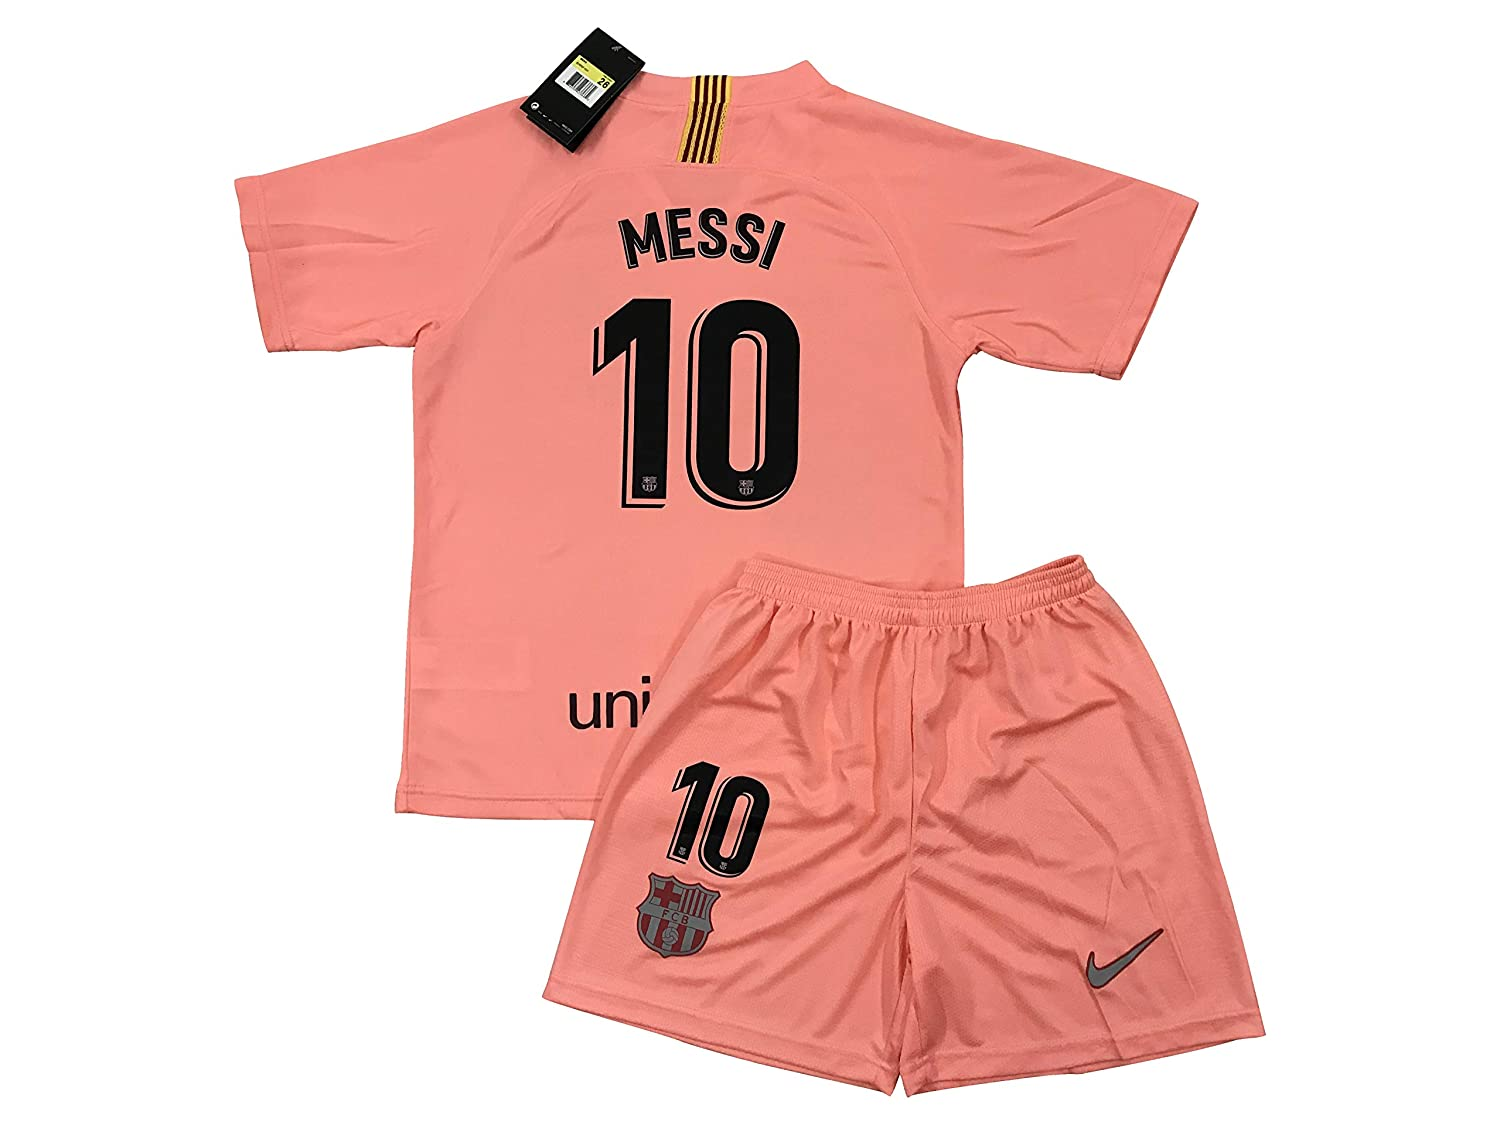 4576db9ac92 Amazon.com: TrendsNow New 2018/2019 Messi #10 FC Barcelona 3rd Jersey &  Shorts for Kids/Youths: Clothing